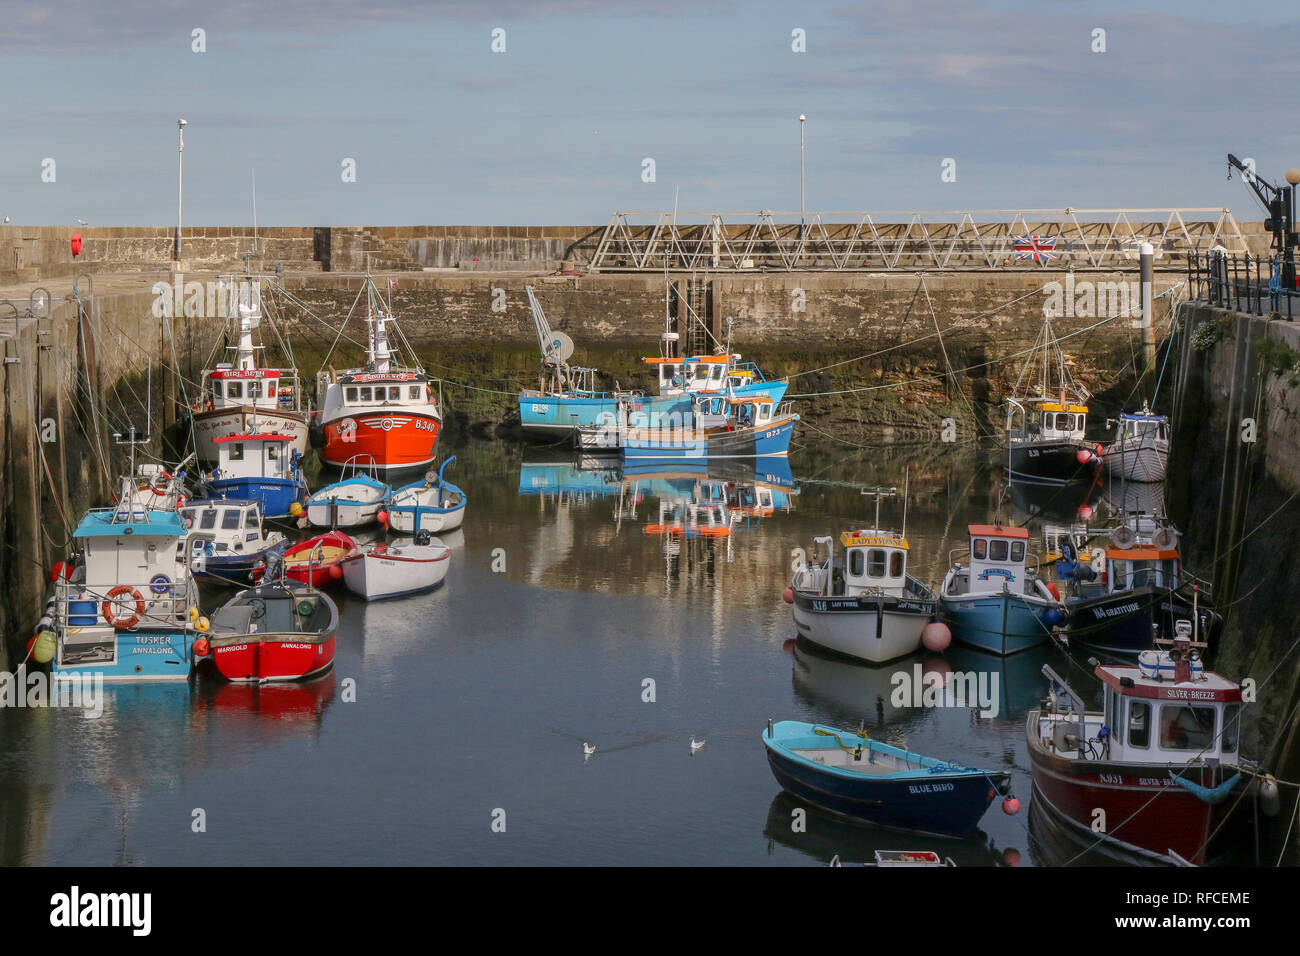 Brightly coloured fishing boats at Annalong, County Down, Northern Ireland. - Stock Image